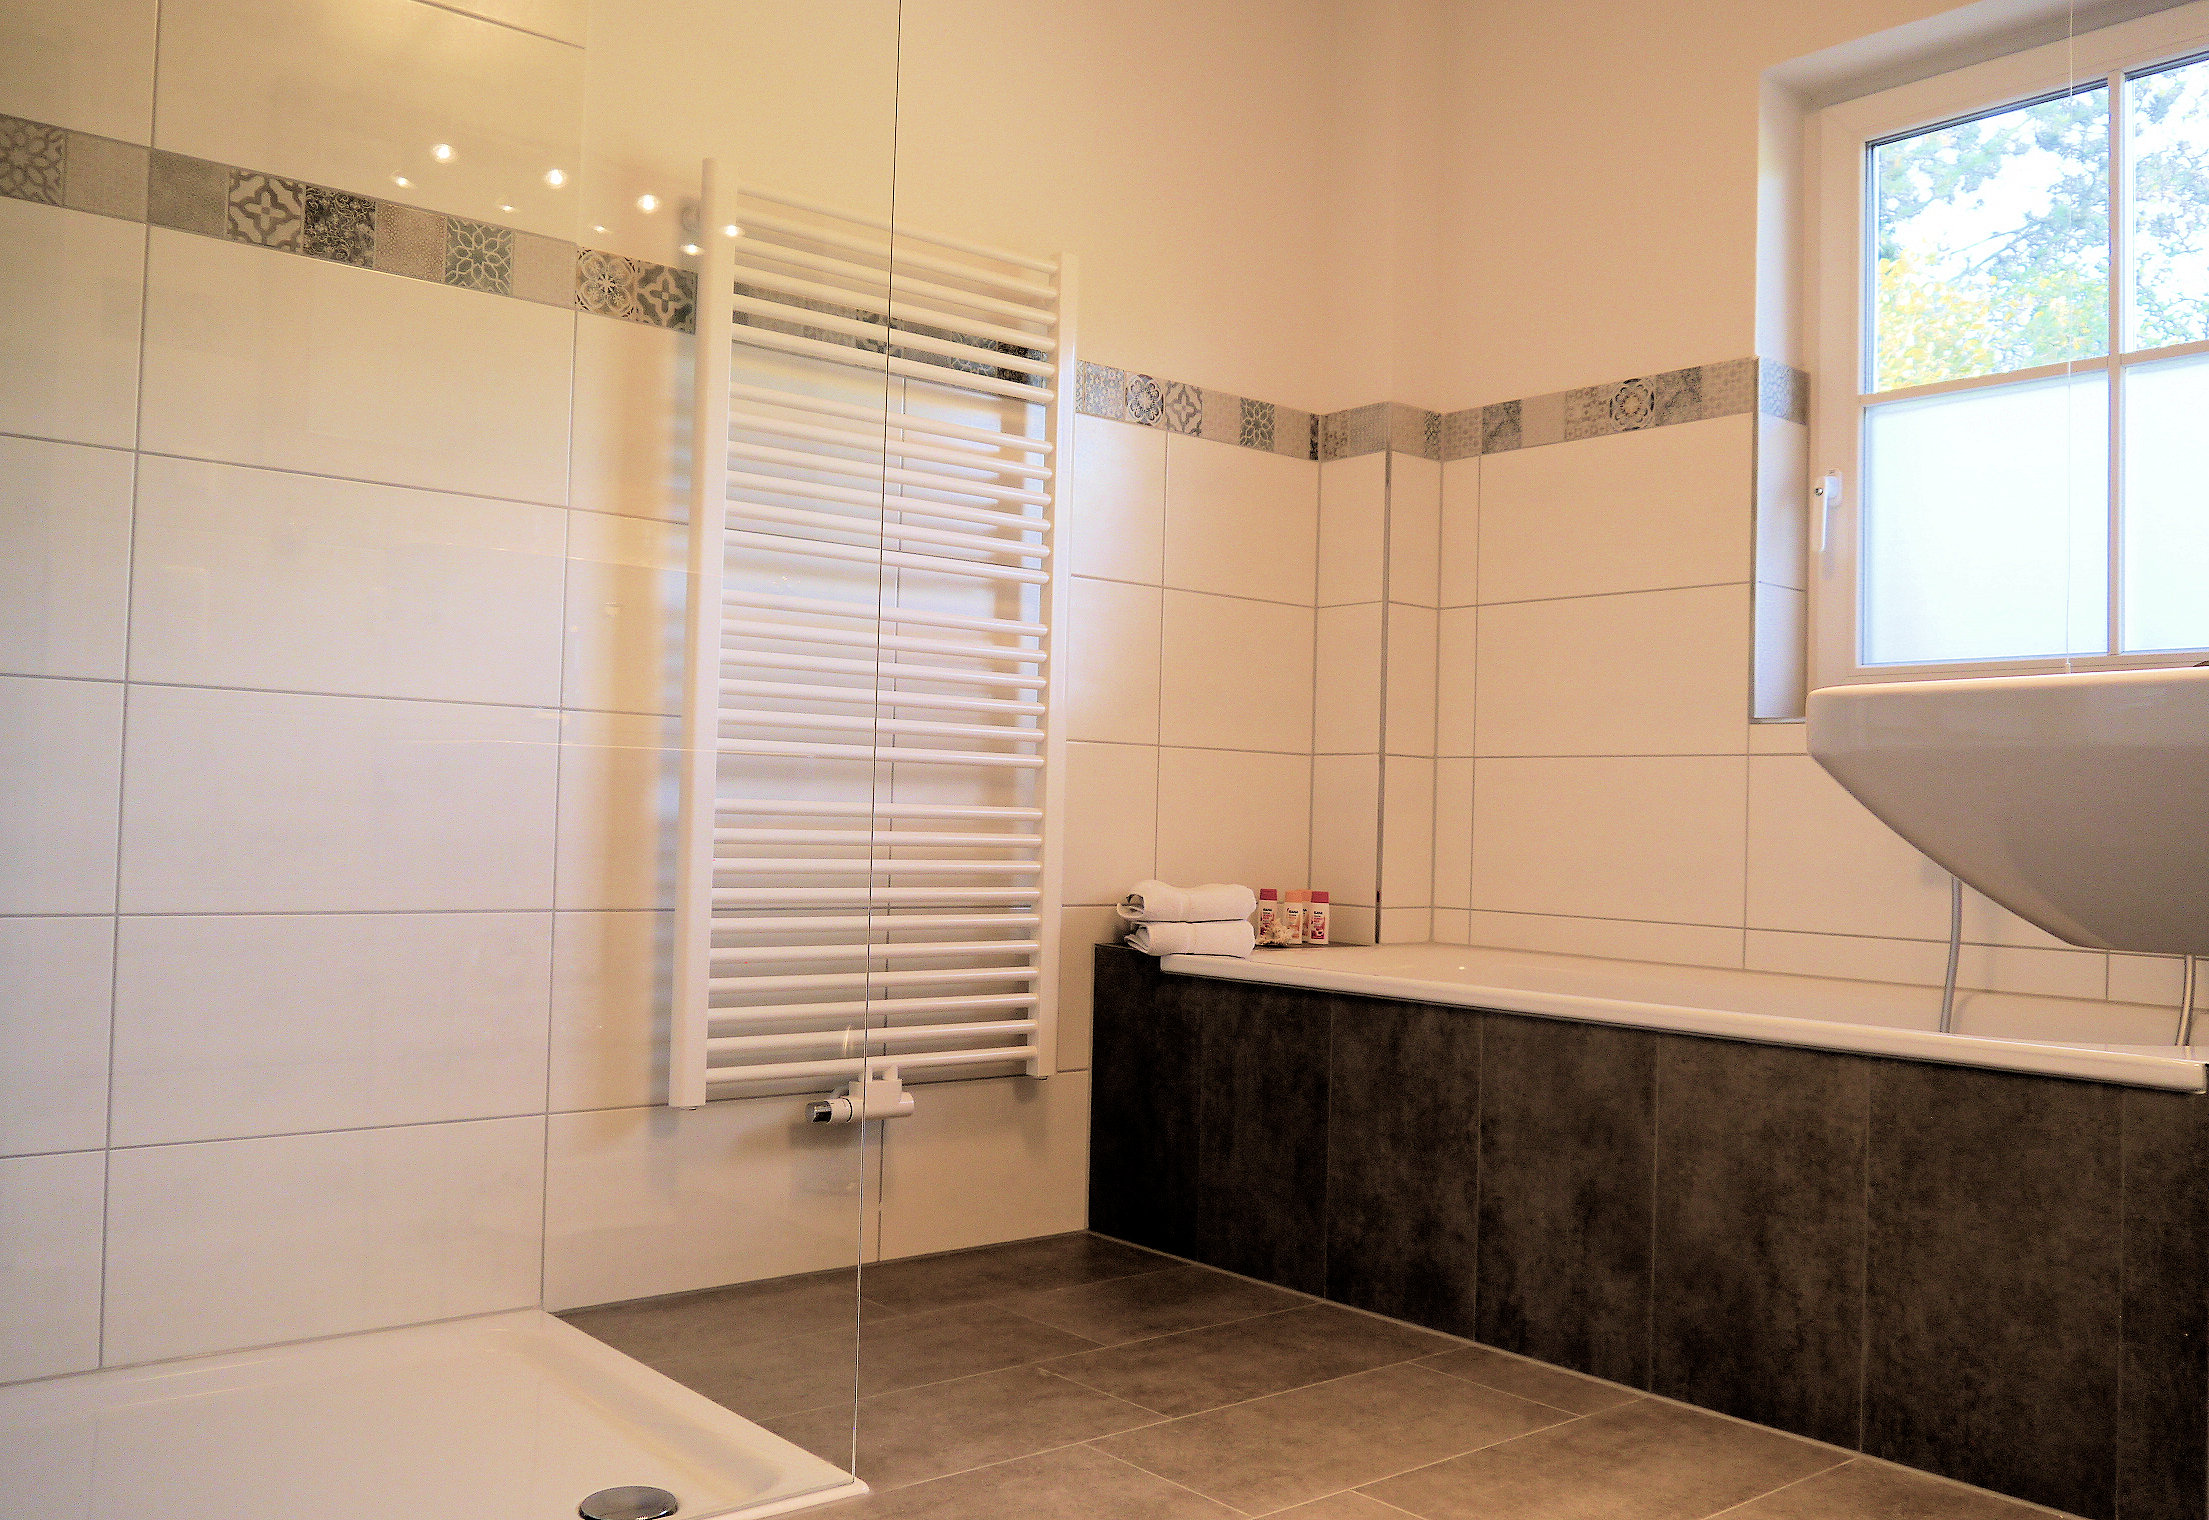 Our spacious bathroom with bath tub and shower.